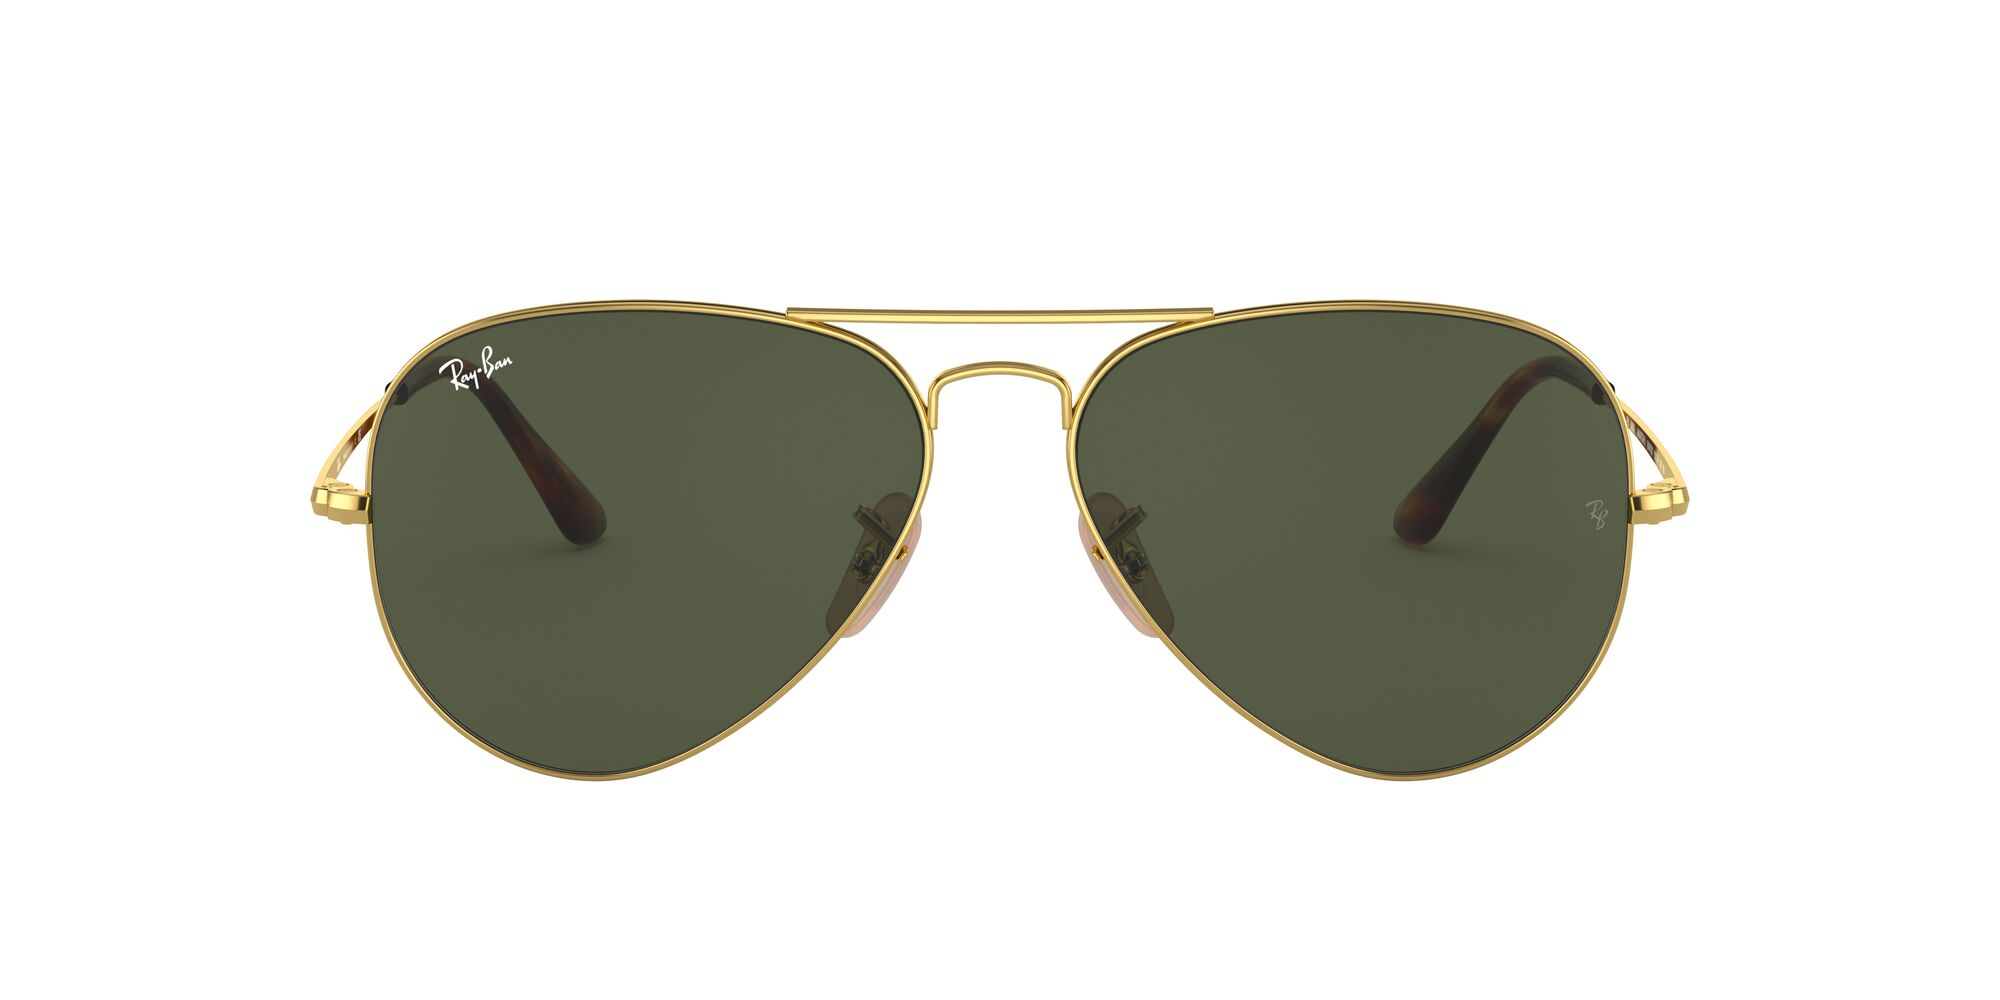 Front Ray-Ban Ray-Ban 0RB3689 914731 55/14 Goud/Groen